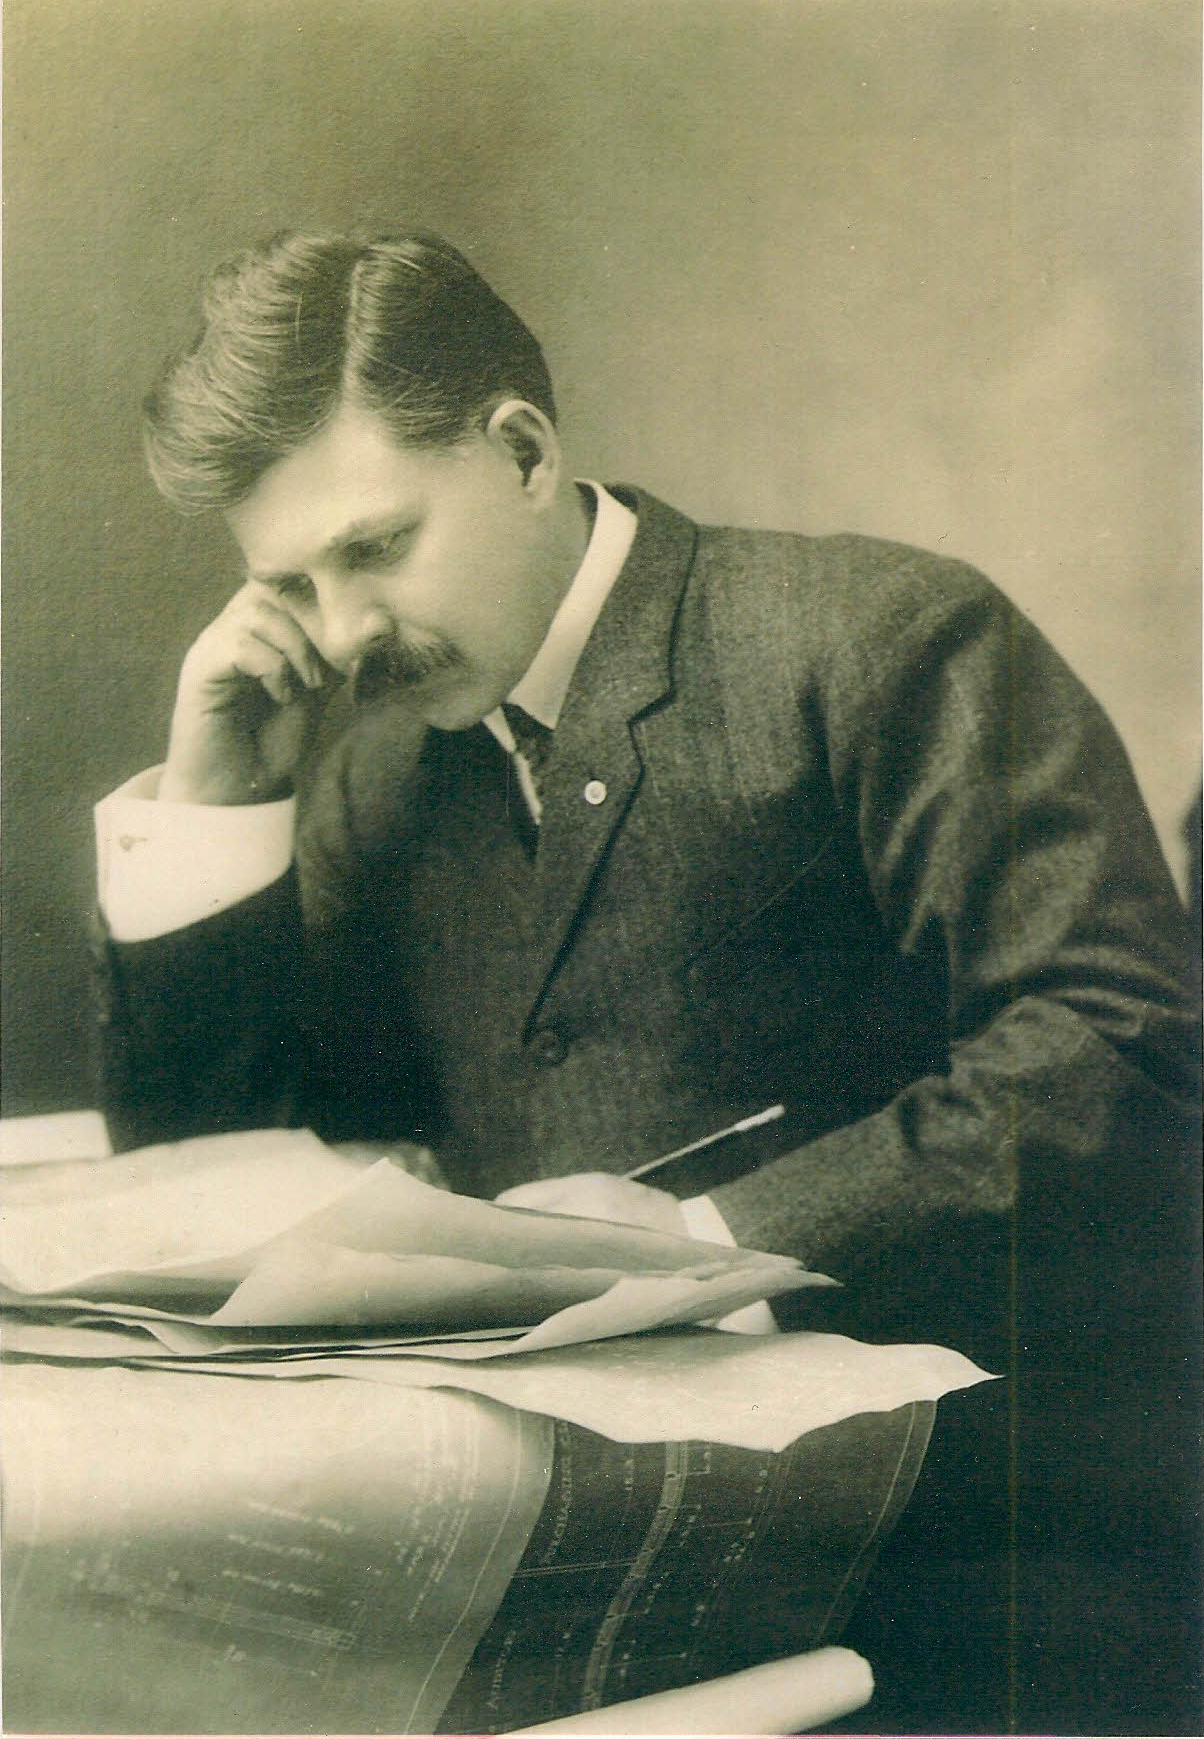 Ransom at age 37